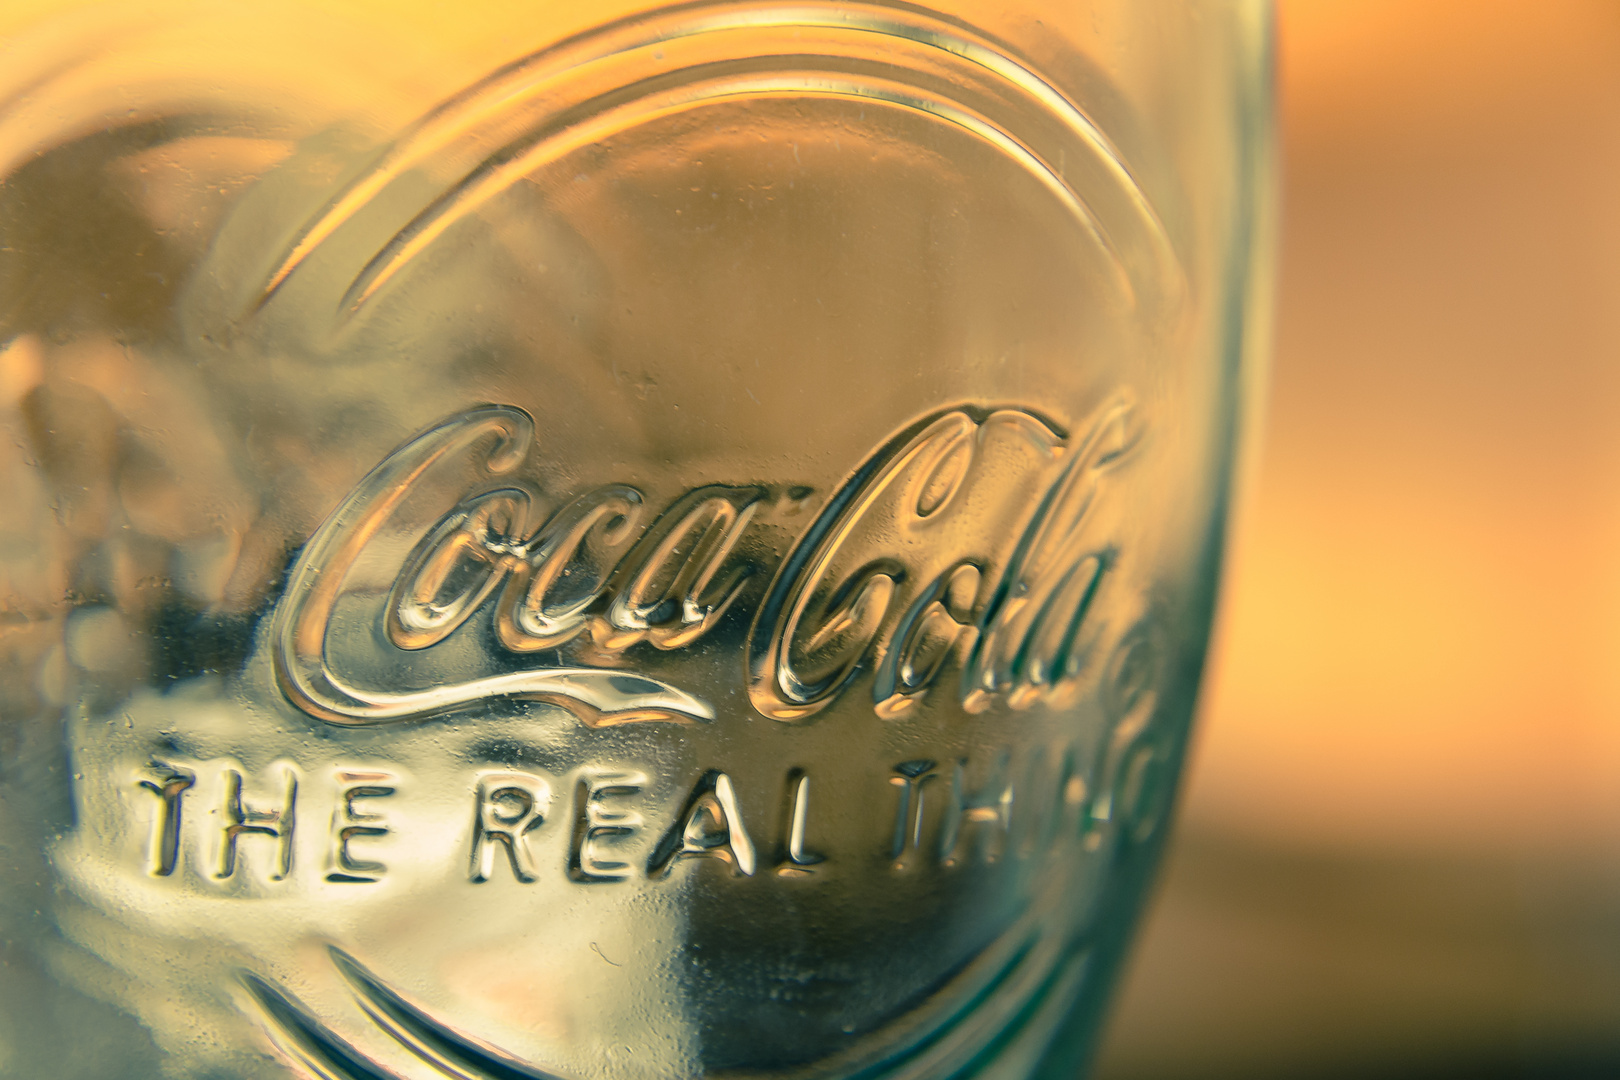 Coca Cola THE REAL THING